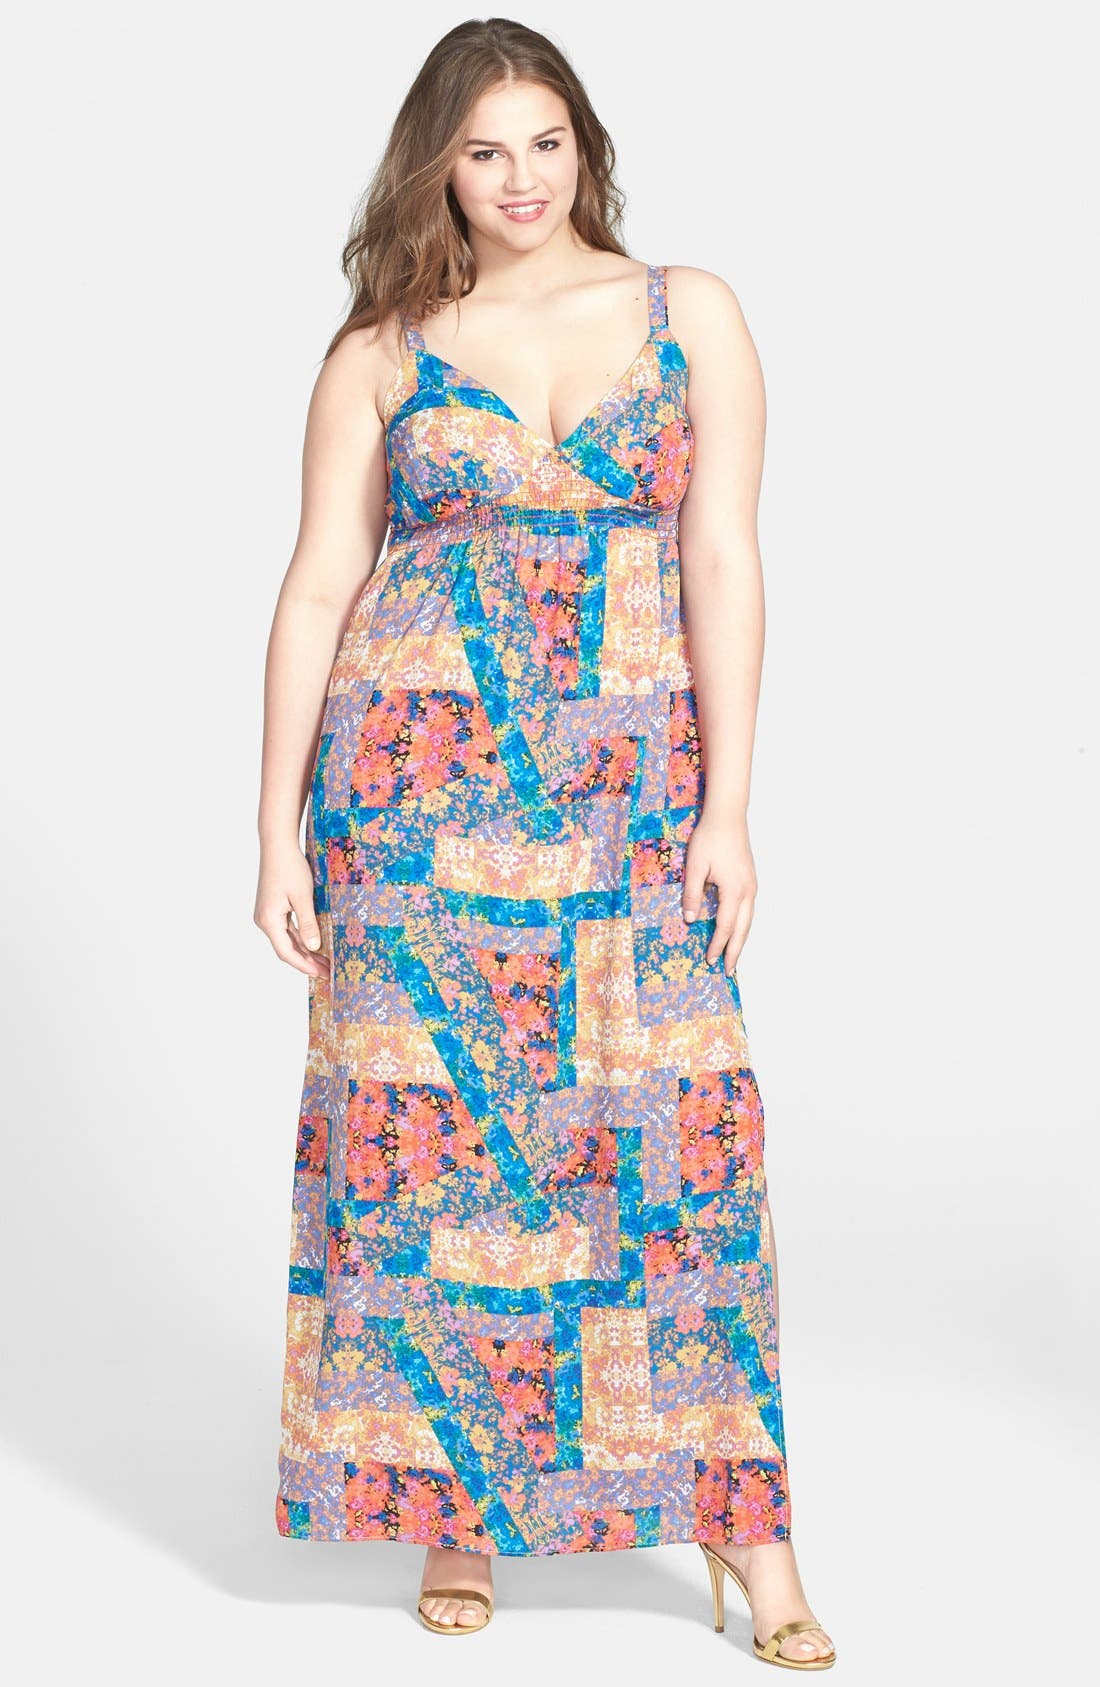 Alternate Image 1 Selected - Eight Sixty Print Smocked Maxi Dress (Plus Size)